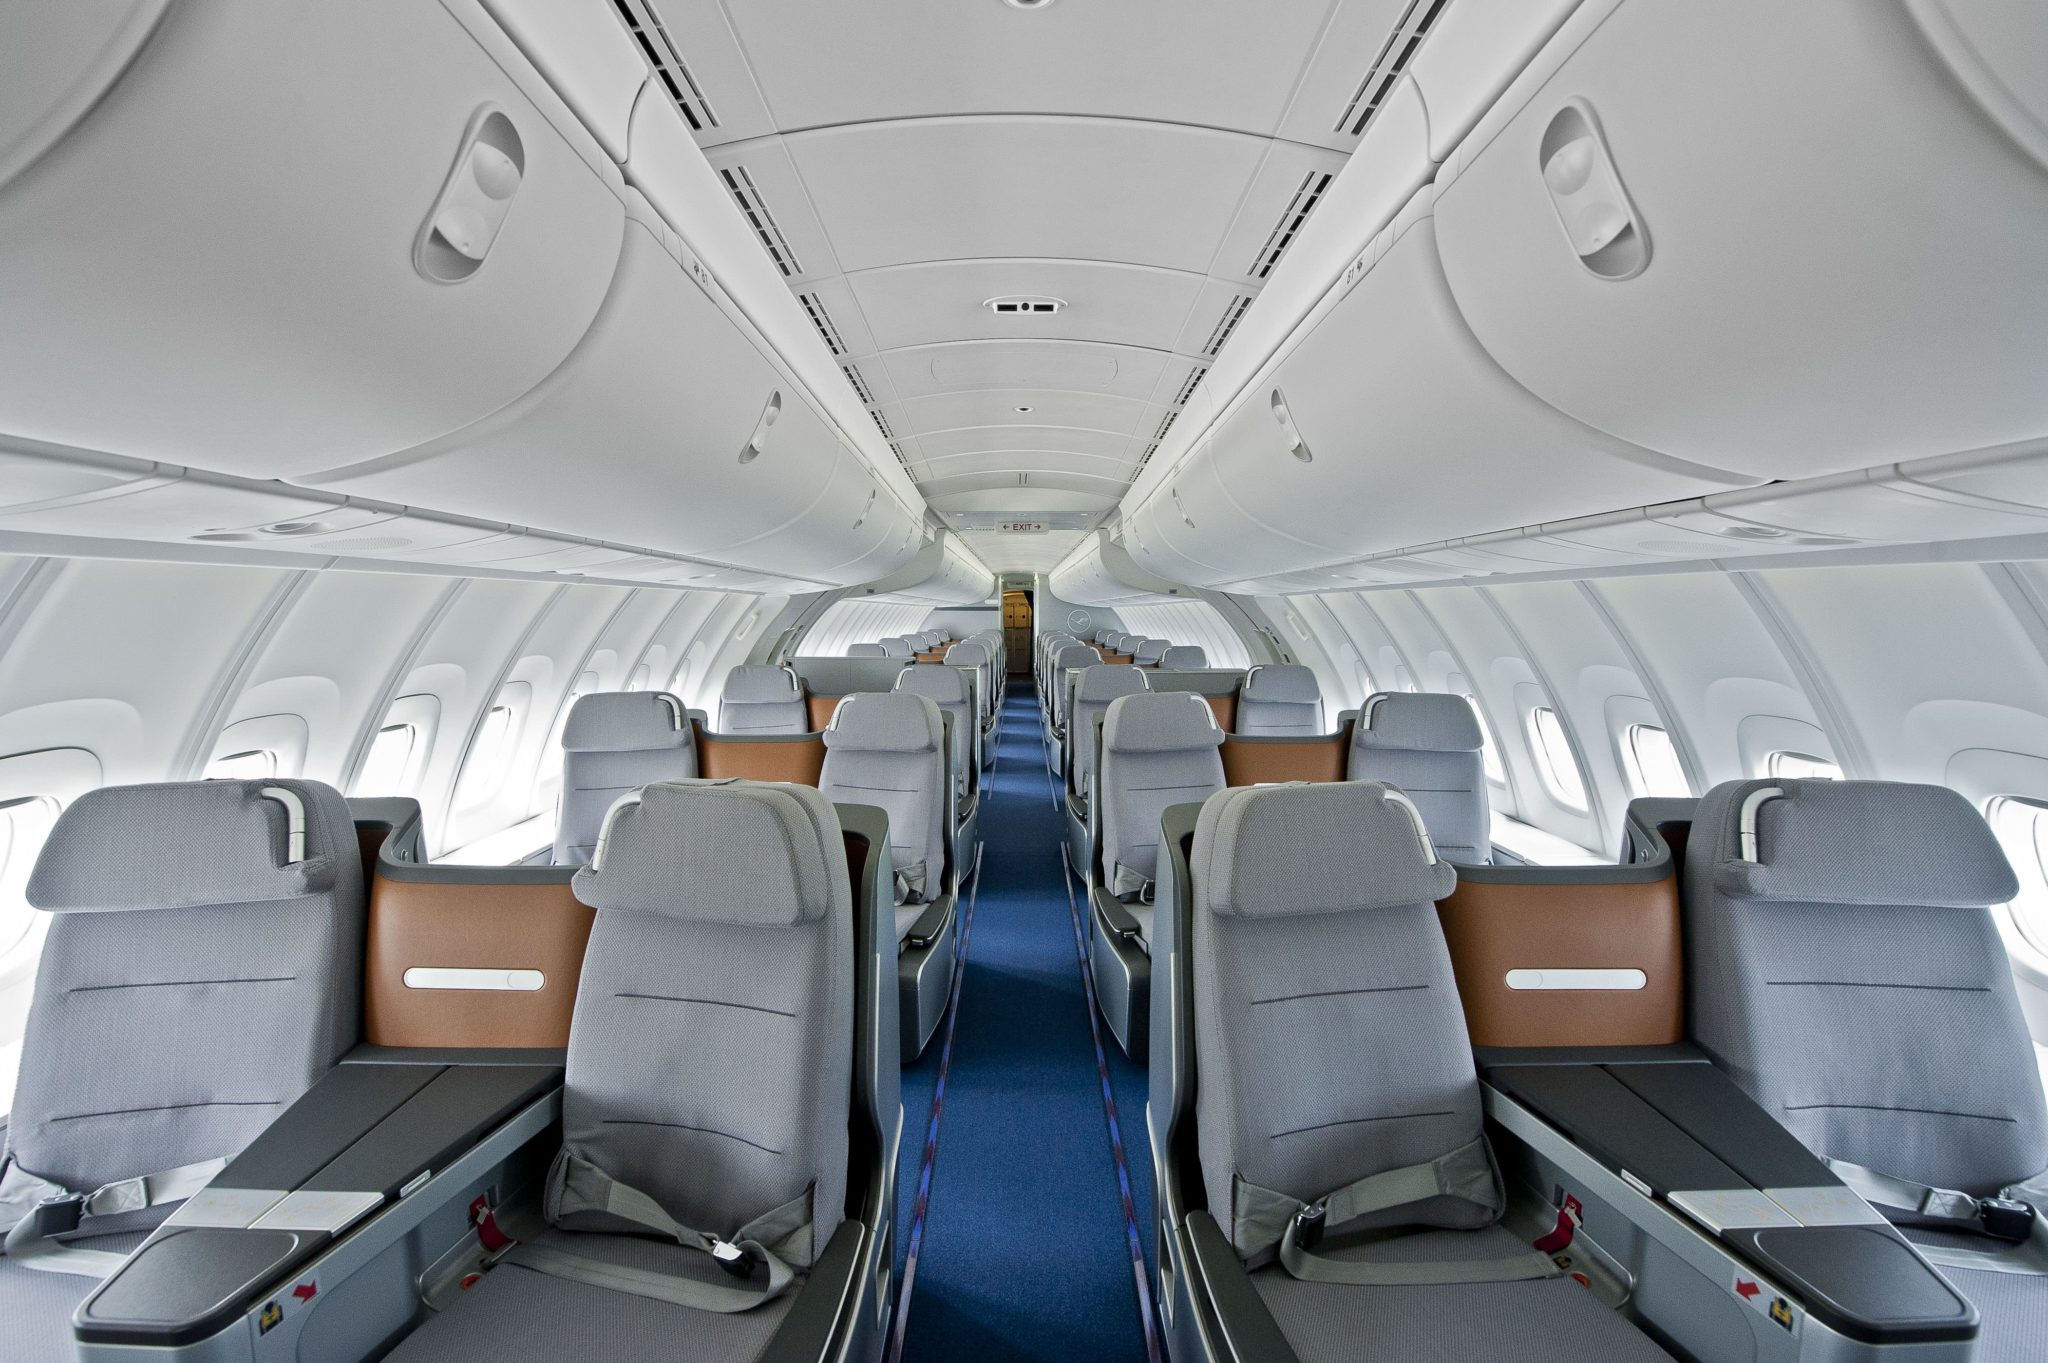 Lufthansa business class on the 747-8 is found upstairs and in the main body. Image: Lufthansa